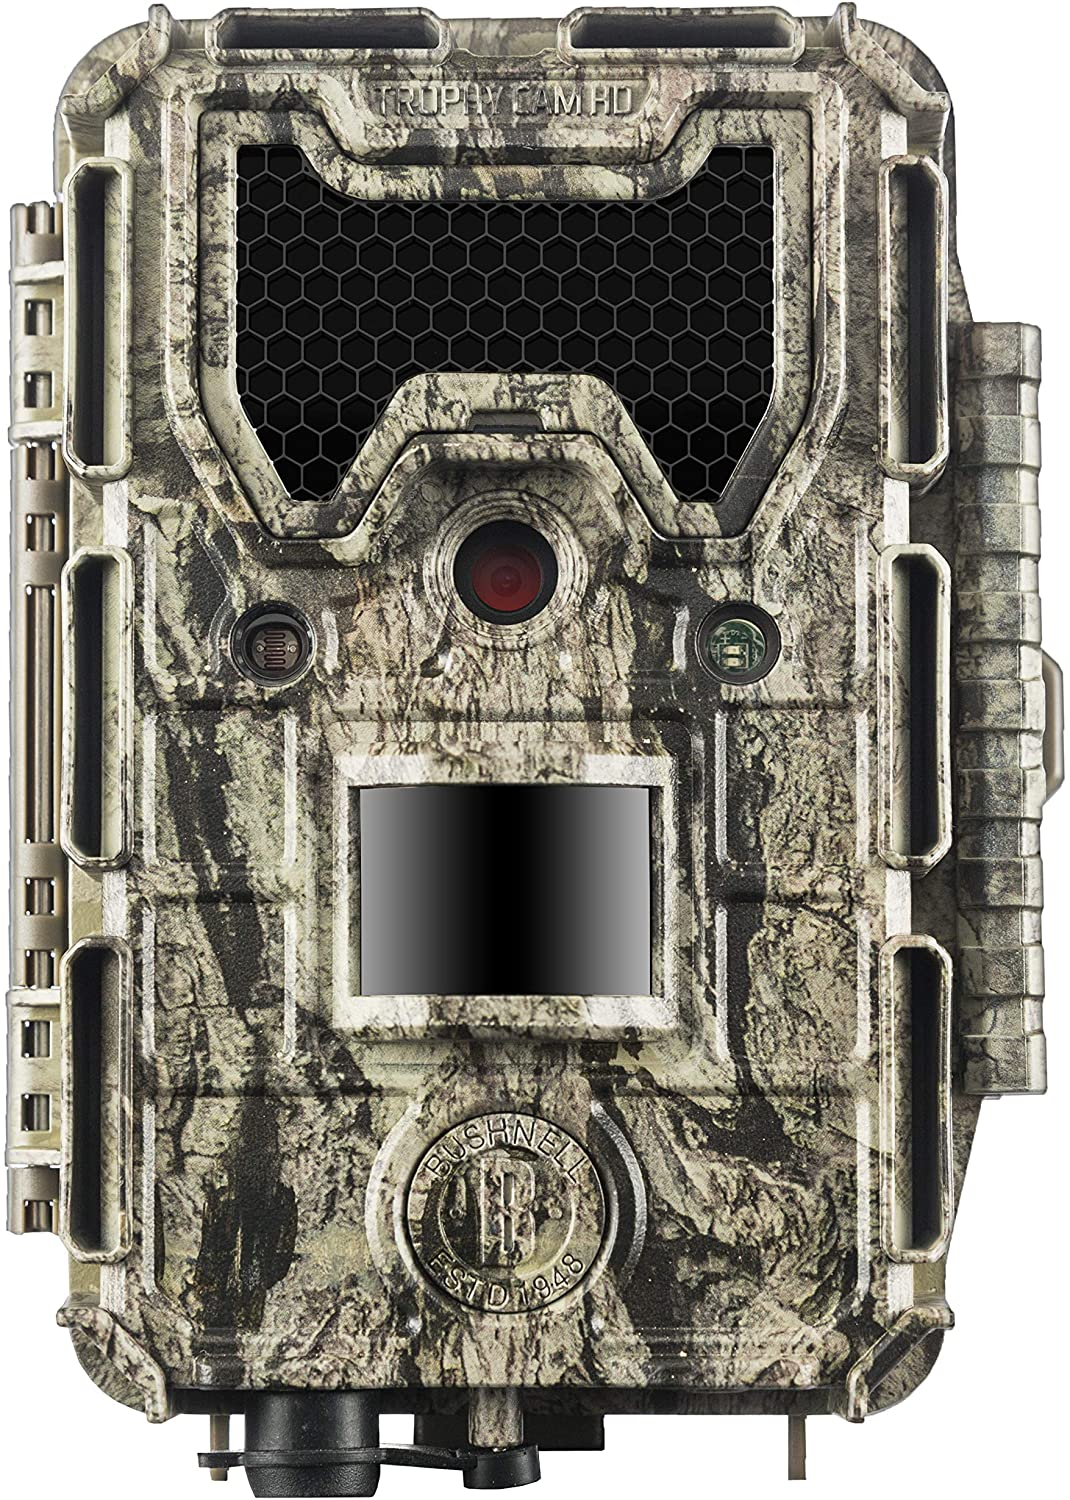 Bushnell 119877 24MP Trophy Cam HD Trail Col Glow Camera Ranking TOP19 Max 53% OFF with No